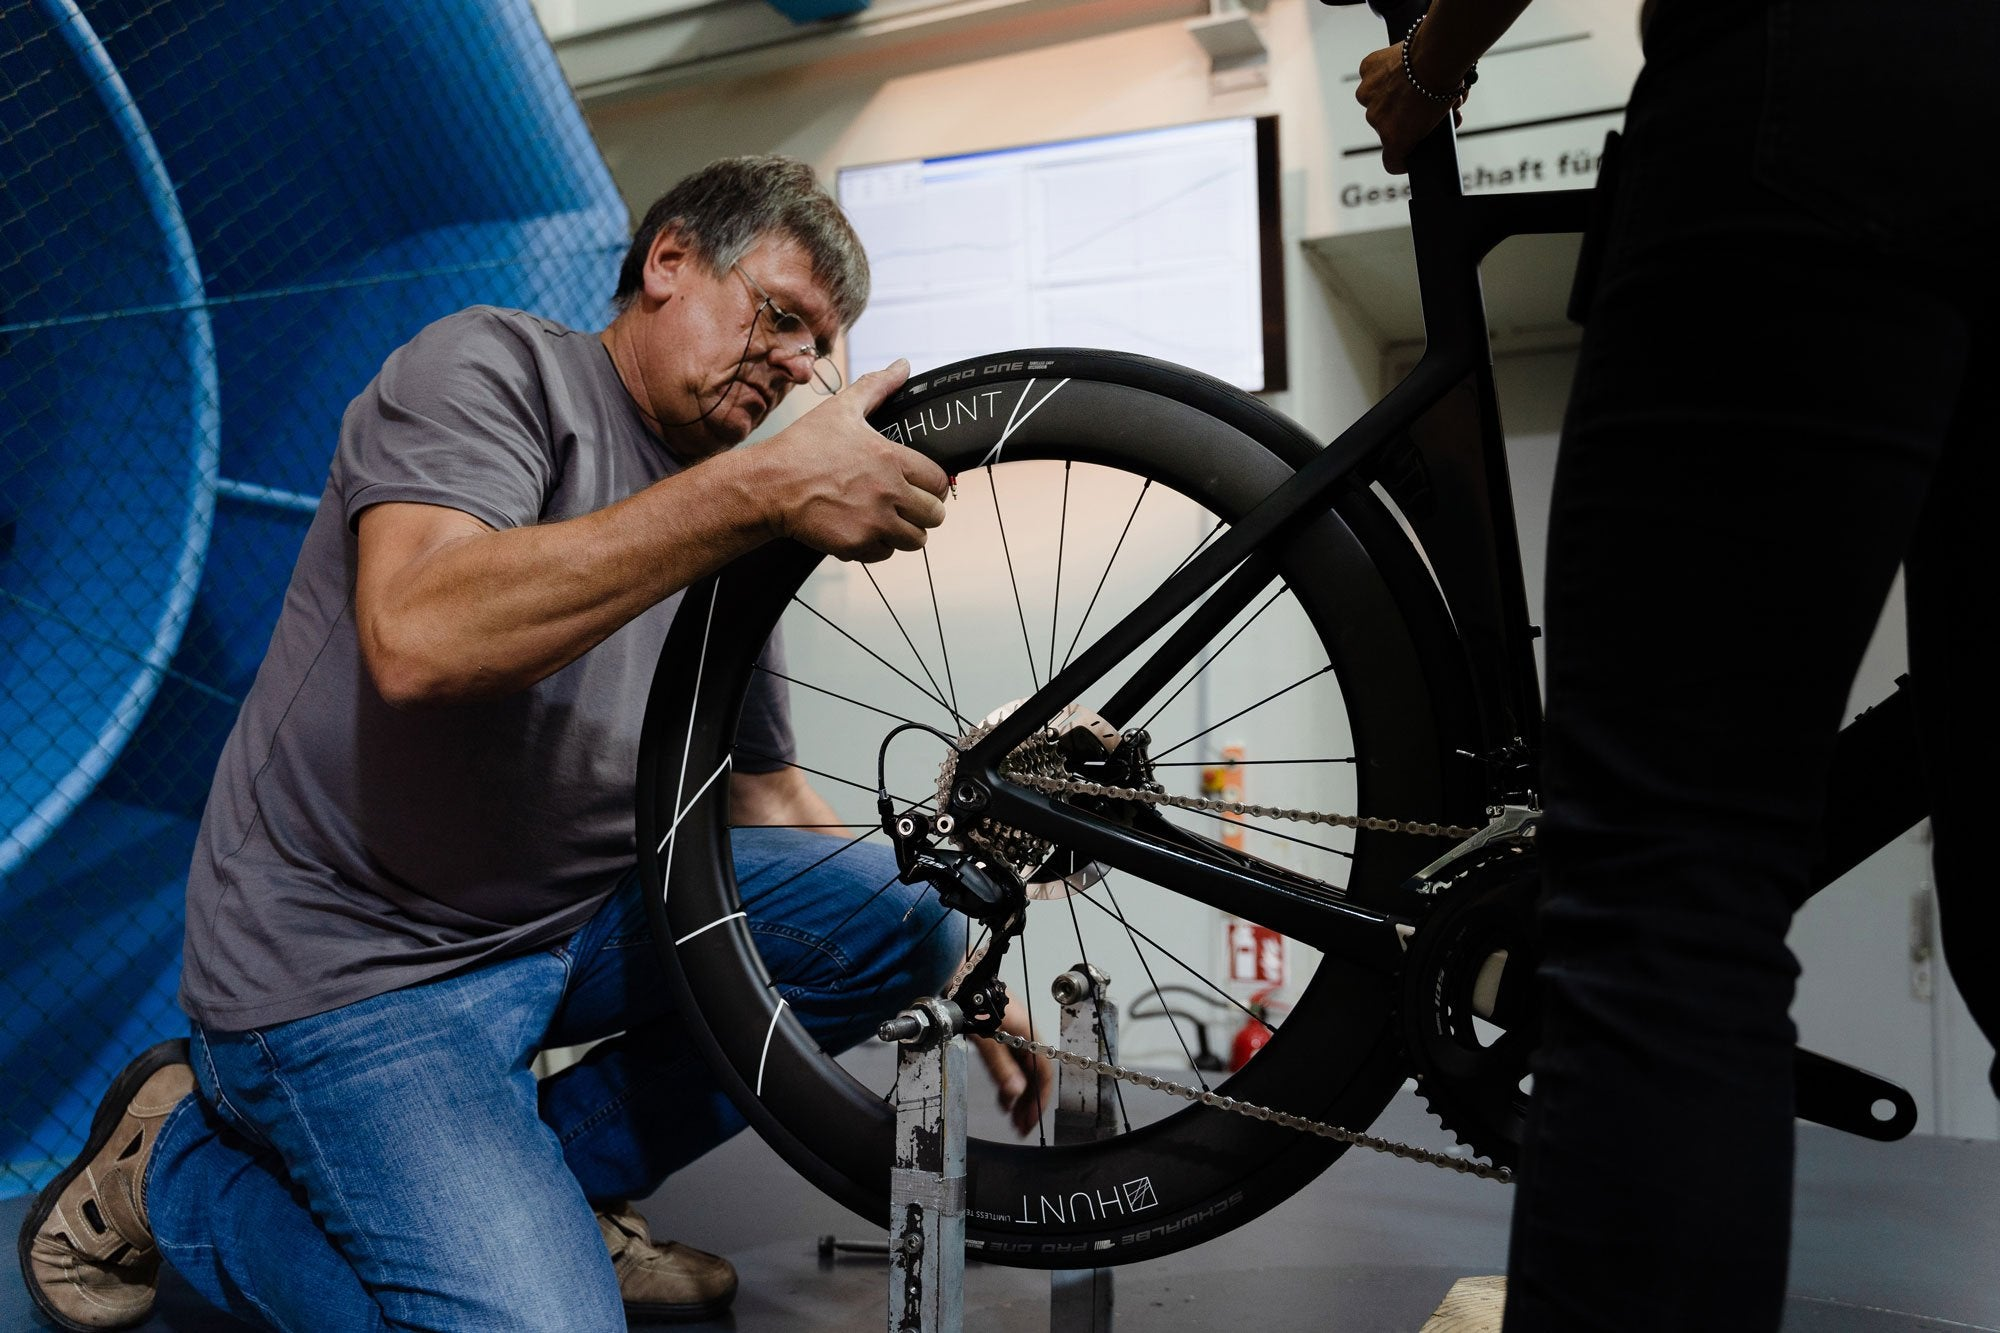 <h1>WIND TUNNEL TESTED </h1><i>Developed by Luisa Grappone, with years in the wind tunnel spent testing every last detail. We've left no stone unturned in designing this wheelset from the ground up to be very fastest in the world within its class.</i>